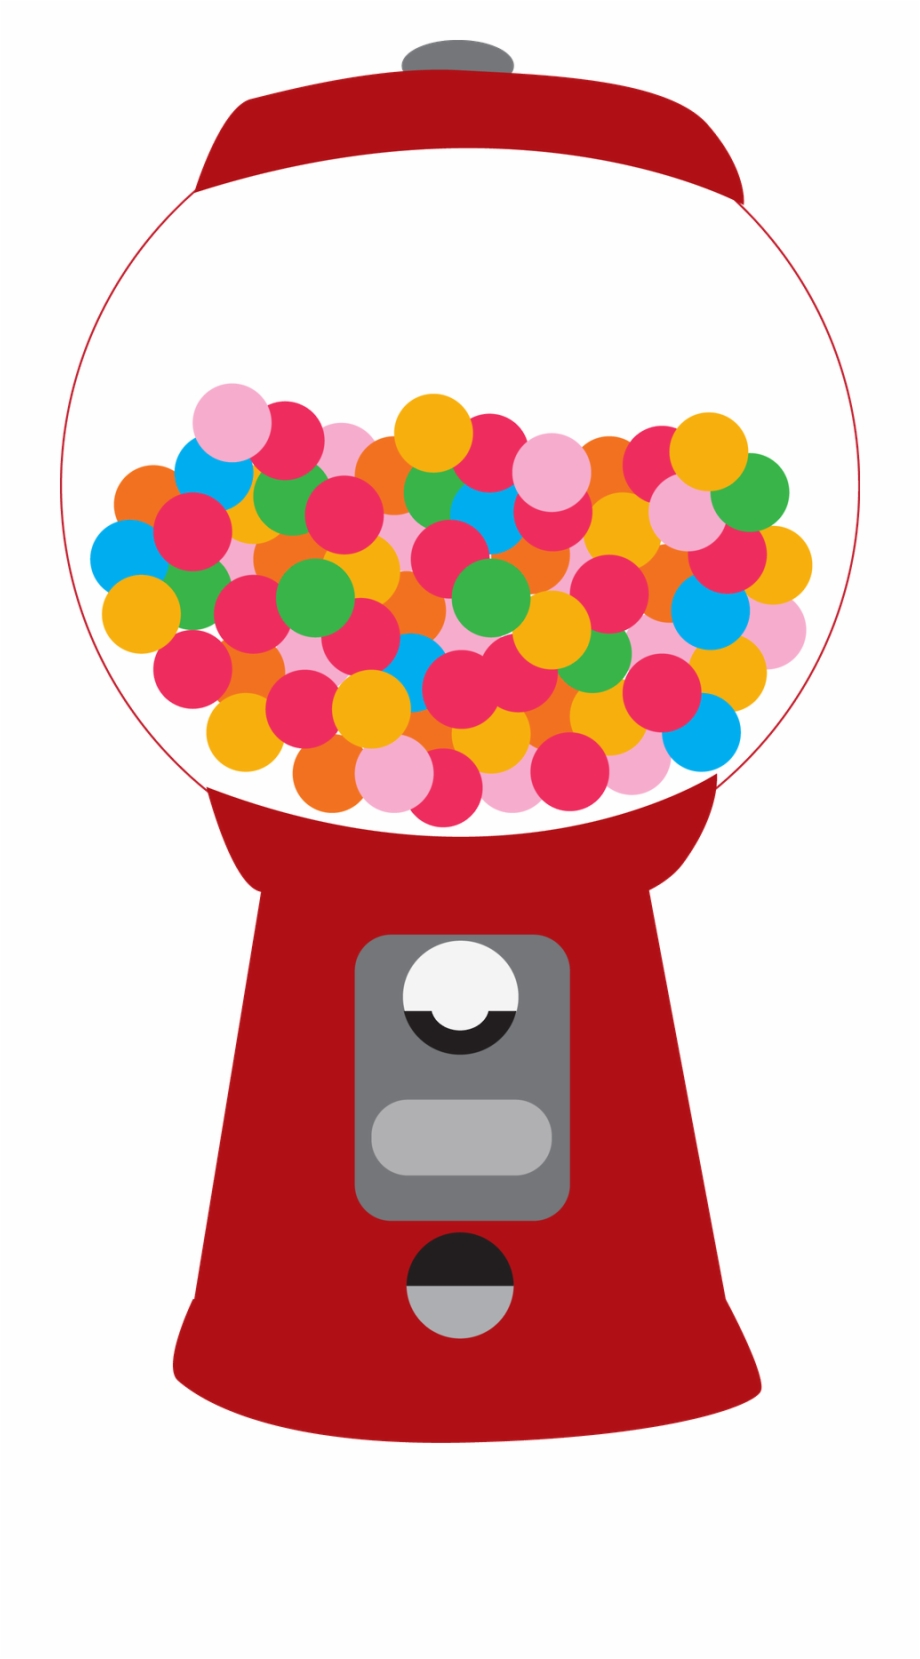 Bubble gum machine clipart clip art royalty free library Gumball Machine Clipart Printable - Bubble Gum Machine Clipart ... clip art royalty free library